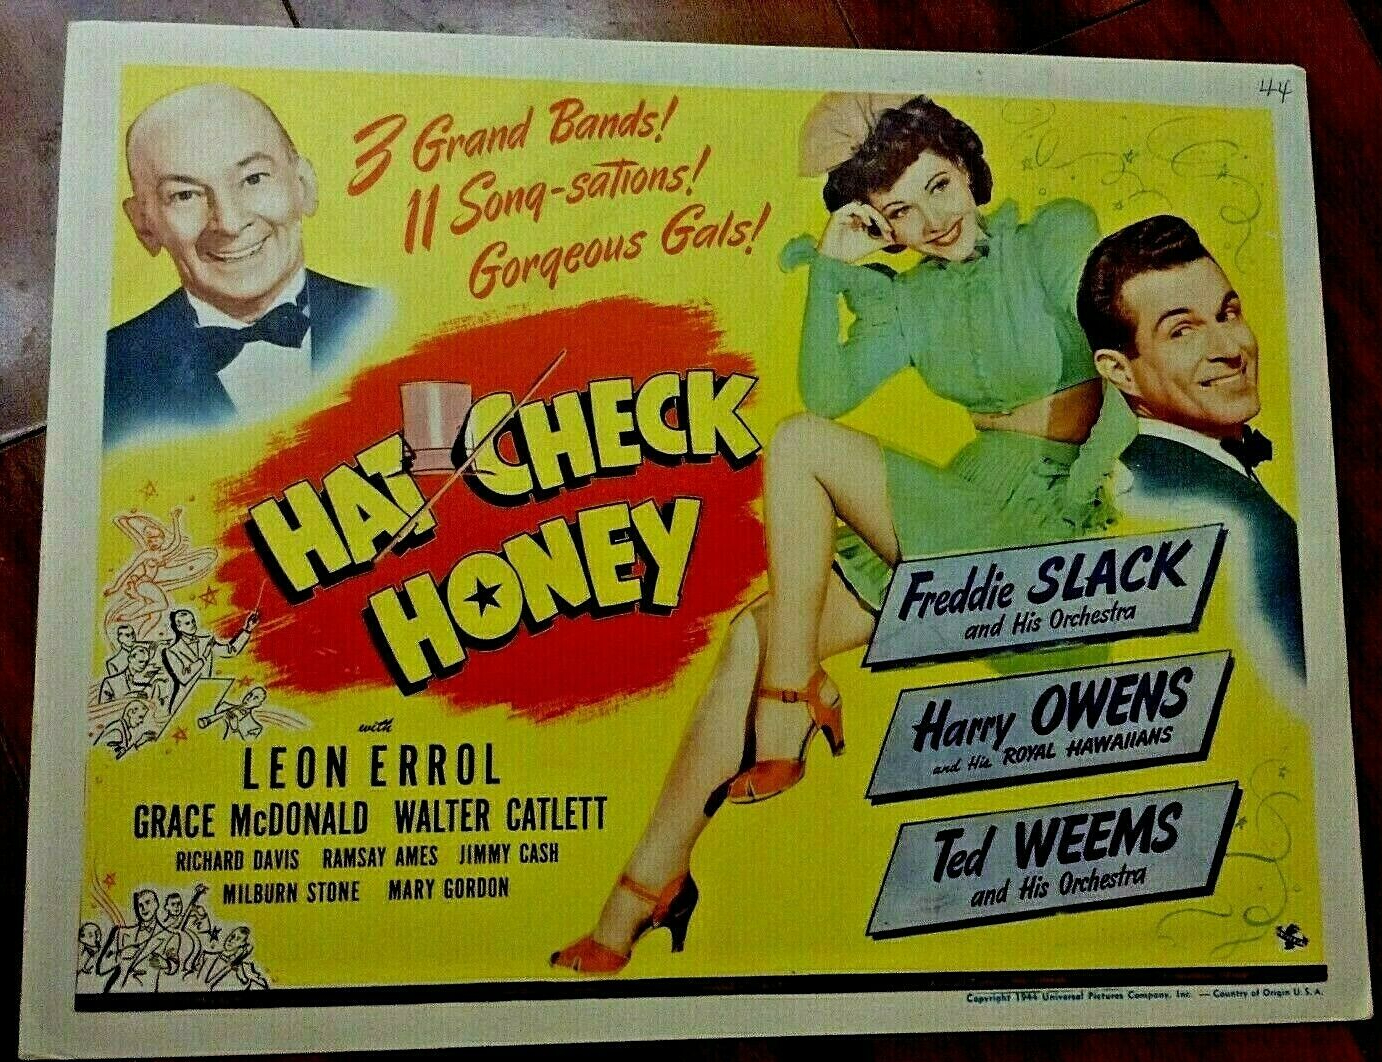 hat check honey title card